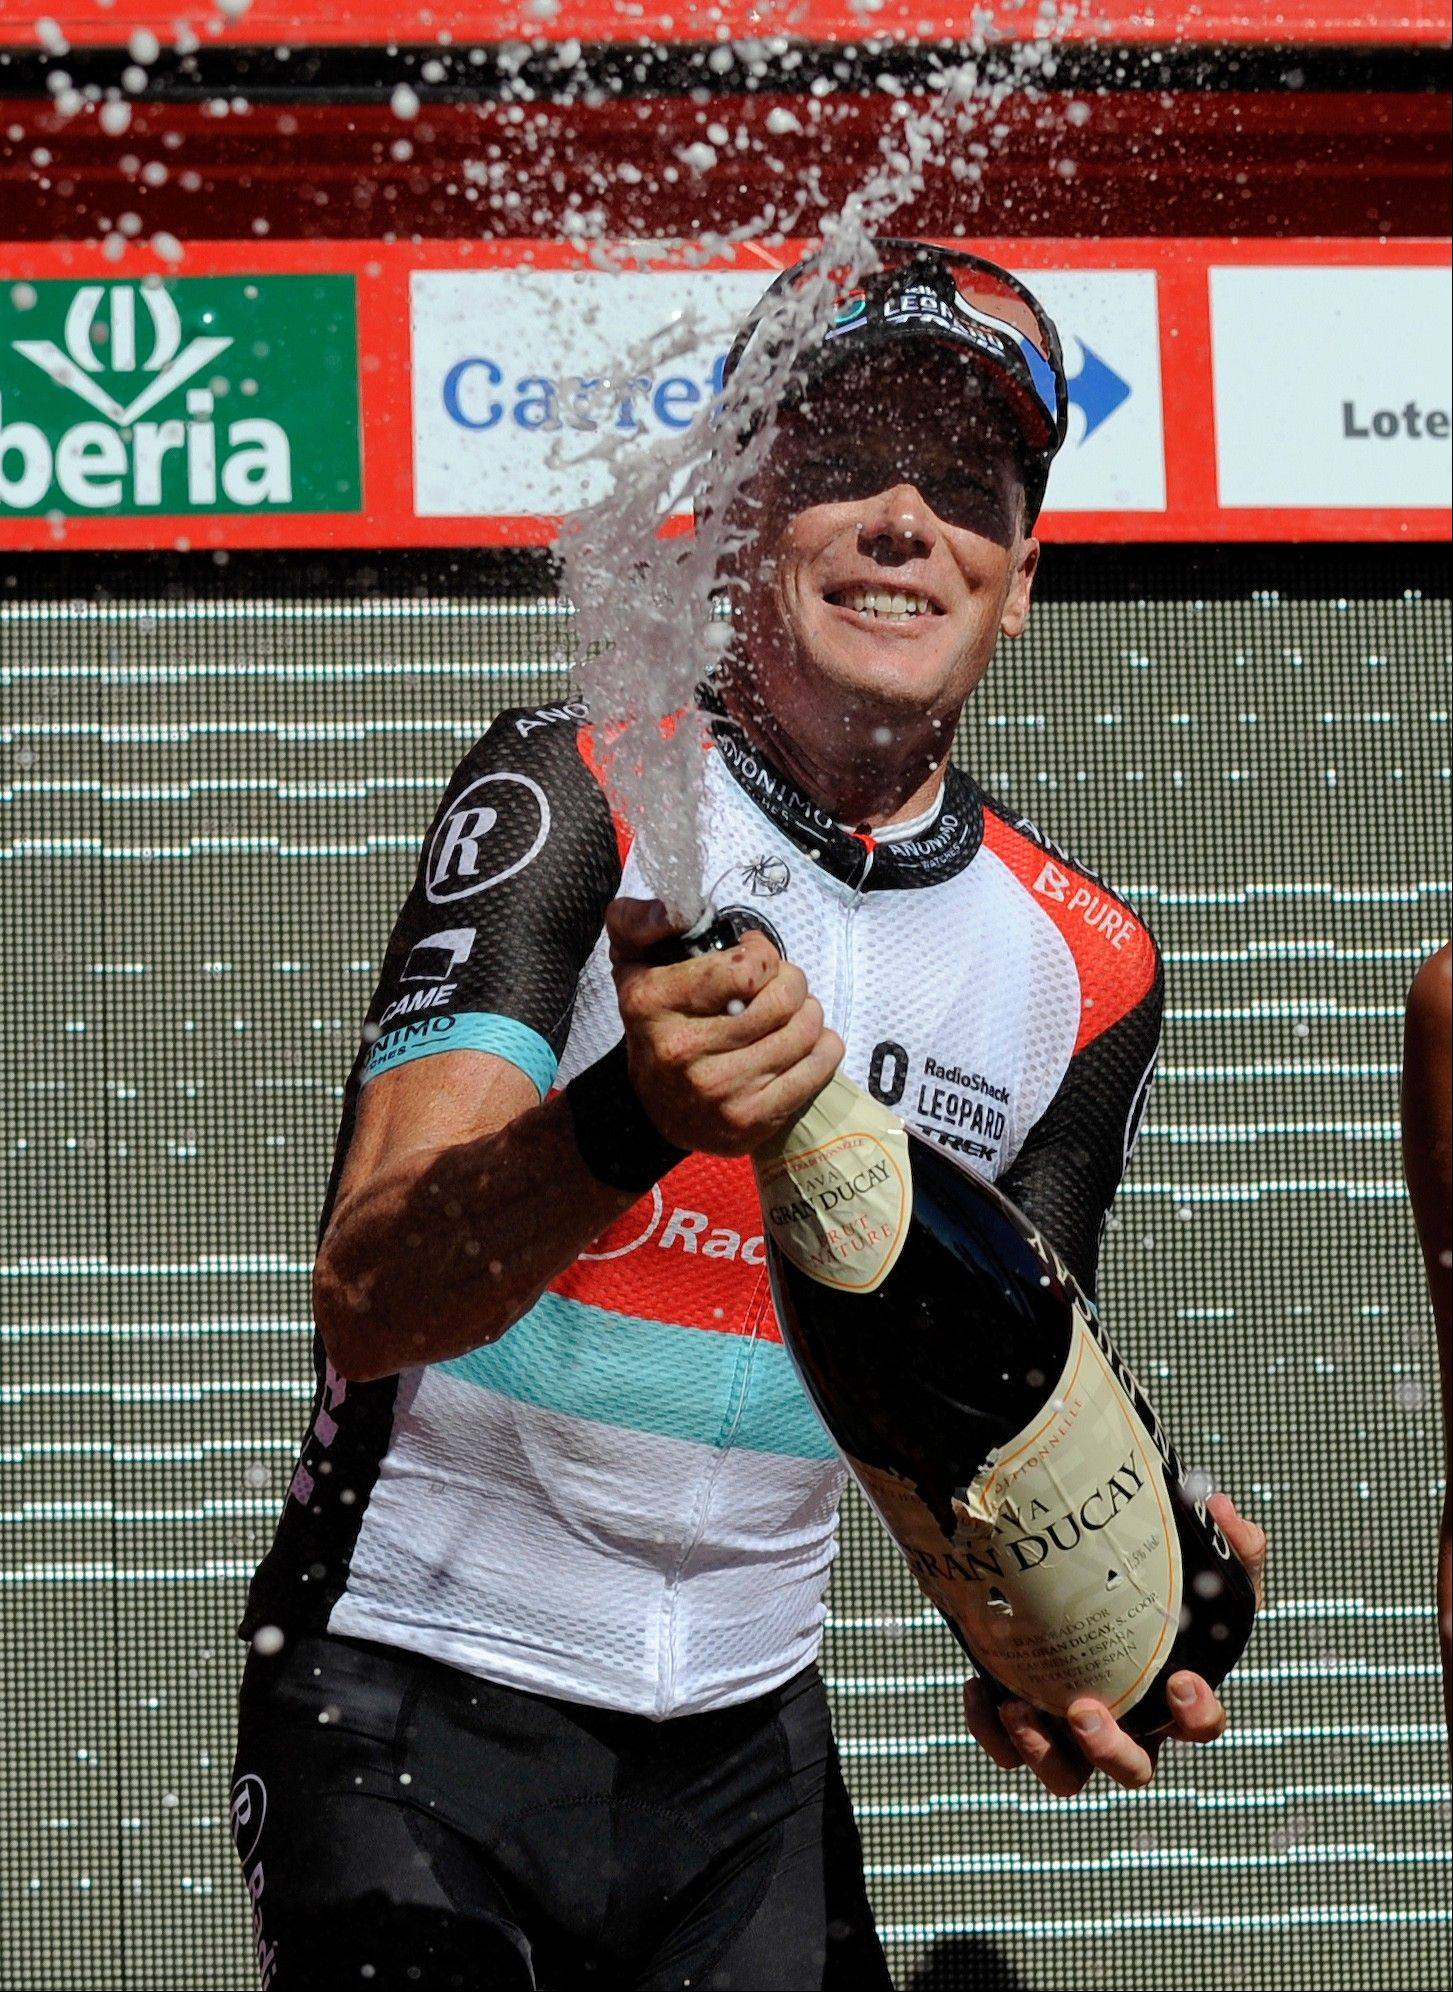 Christopher Horner celebrates on the podium after winning the third stage of the Spanish Vuelta on Monday and taking the overall lead. The 21-stage race ends in Madrid on Sept. 15.